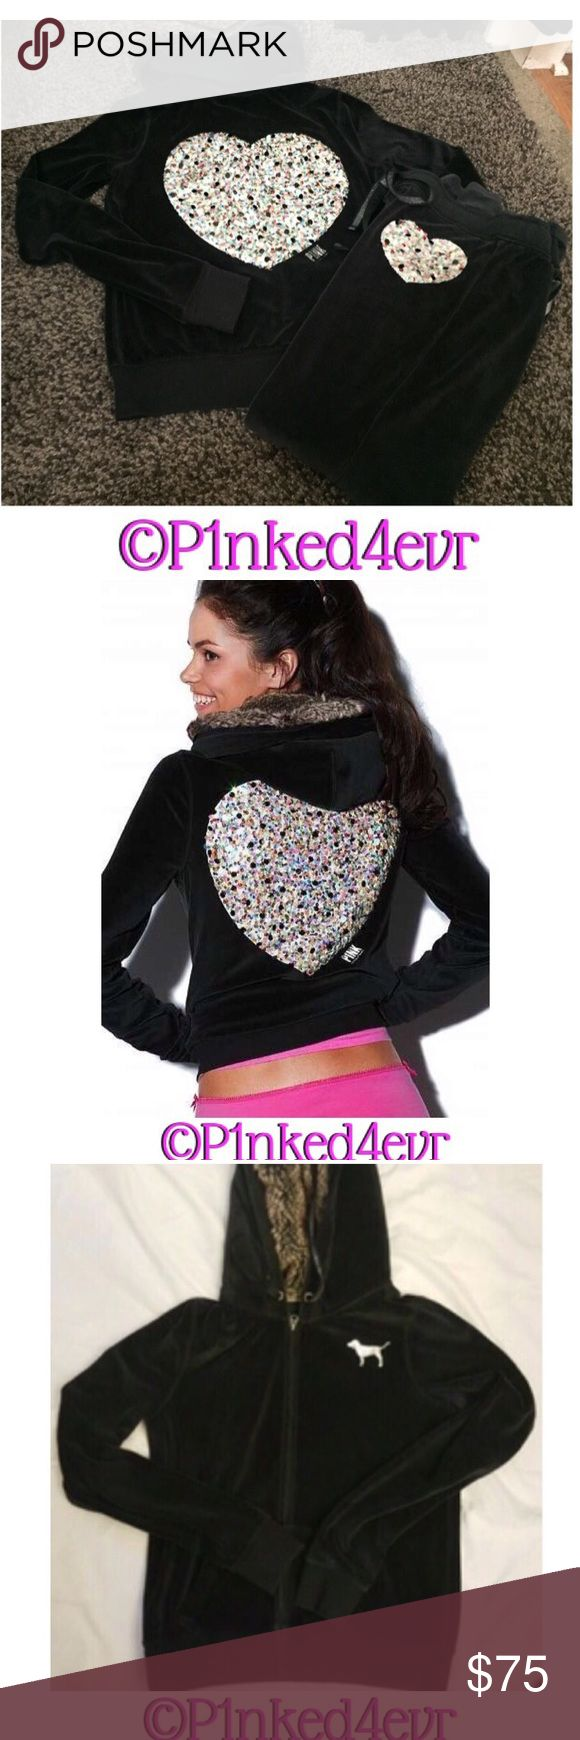 HTF Vintage VS PINK Fur lined Bling Heart Set HTF Vintage VS PINK Fur lined Bling Heart Set. Soft velour feeling fabric with a gorgeous large multi-colored bling heart on the back of the fur lined hoodie and also ok the thigh of the matching bottoms. LOVE PINK graphic on the butt of the sweats does show some wear, but nothing too major. No rips, stains, or tears. Both size small. ❌SELECTIVE TRADES FOR OTHER VS PINK WITH ESTABLISHED TRADERS ONLY- SEE TRADING RULES LISTING FOR DETAILS❌ PINK…